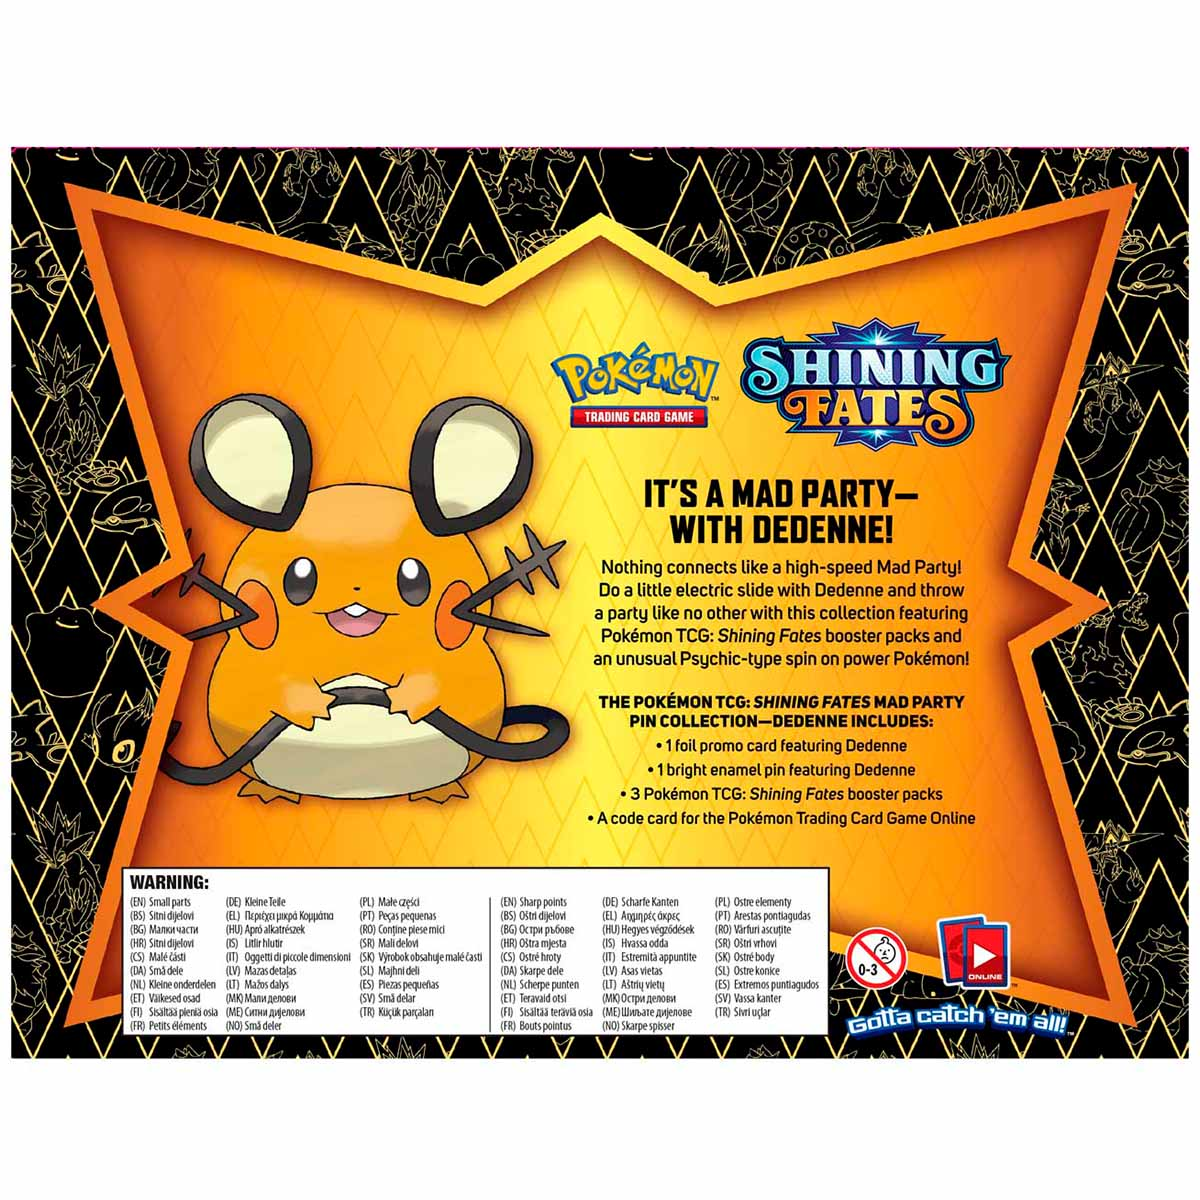 Pokémon - Shining Fates Mad Party Pin Collection - Dedenne